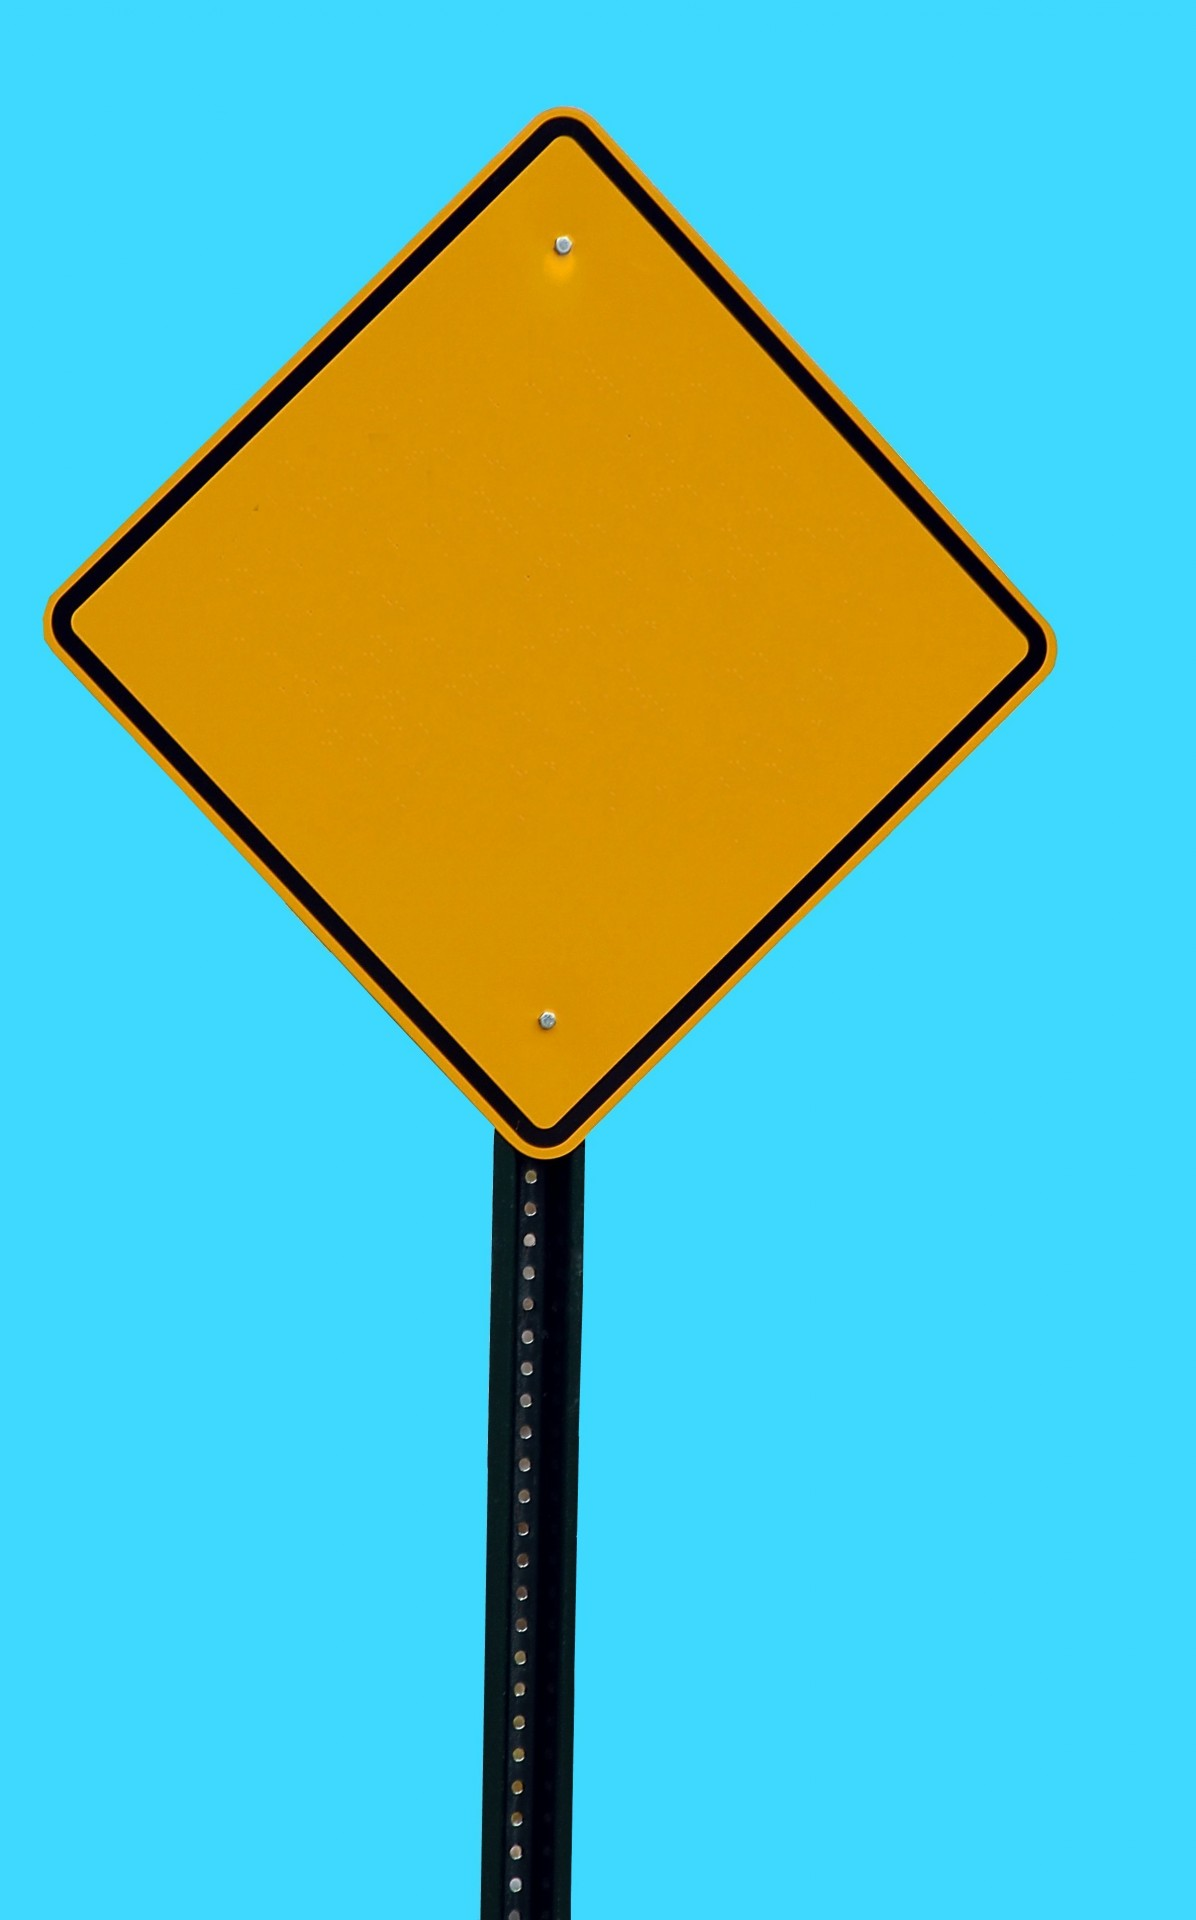 Blank Road Sign Free Stock Photo